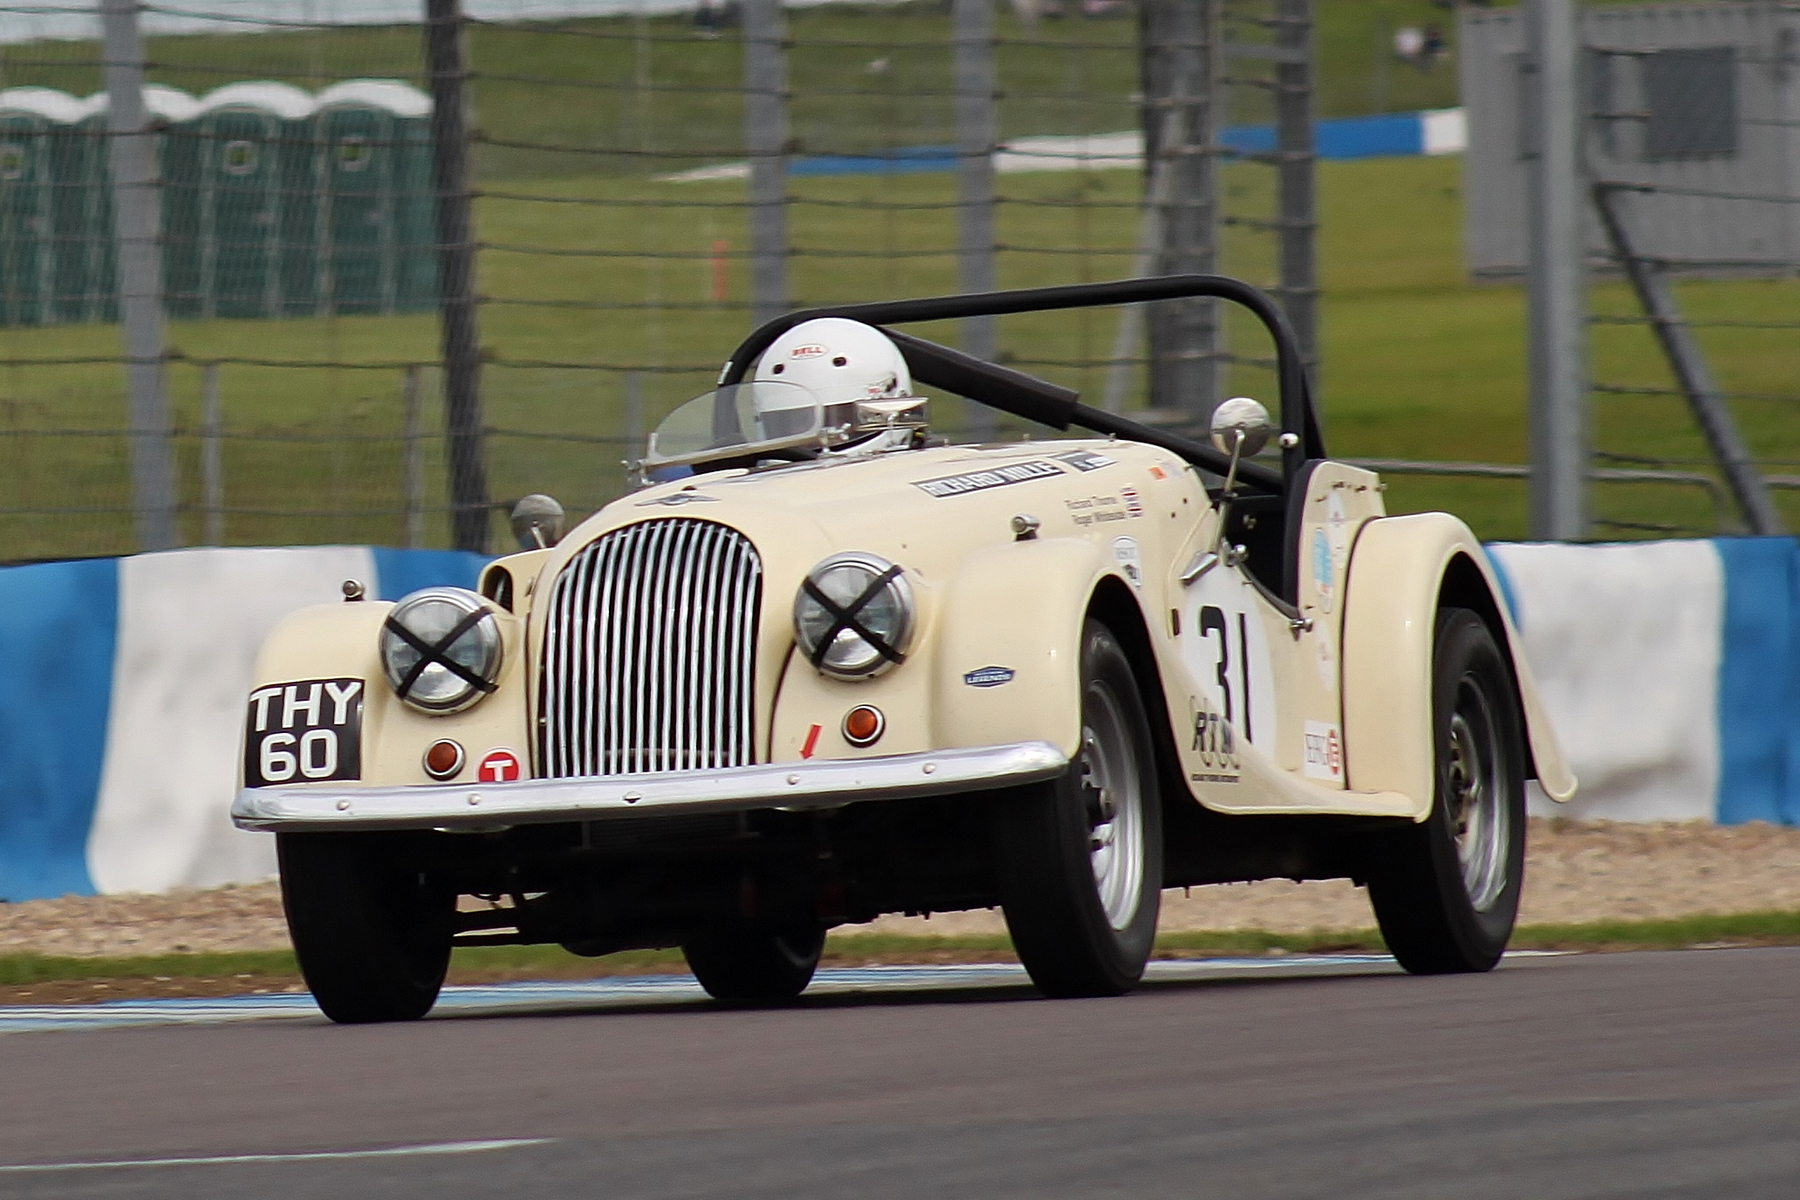 Richard Thorne demonstrates a tad of roll in the Morgan +4 on his way to 6th place                            Photo - Bob Bull, Tripos Media